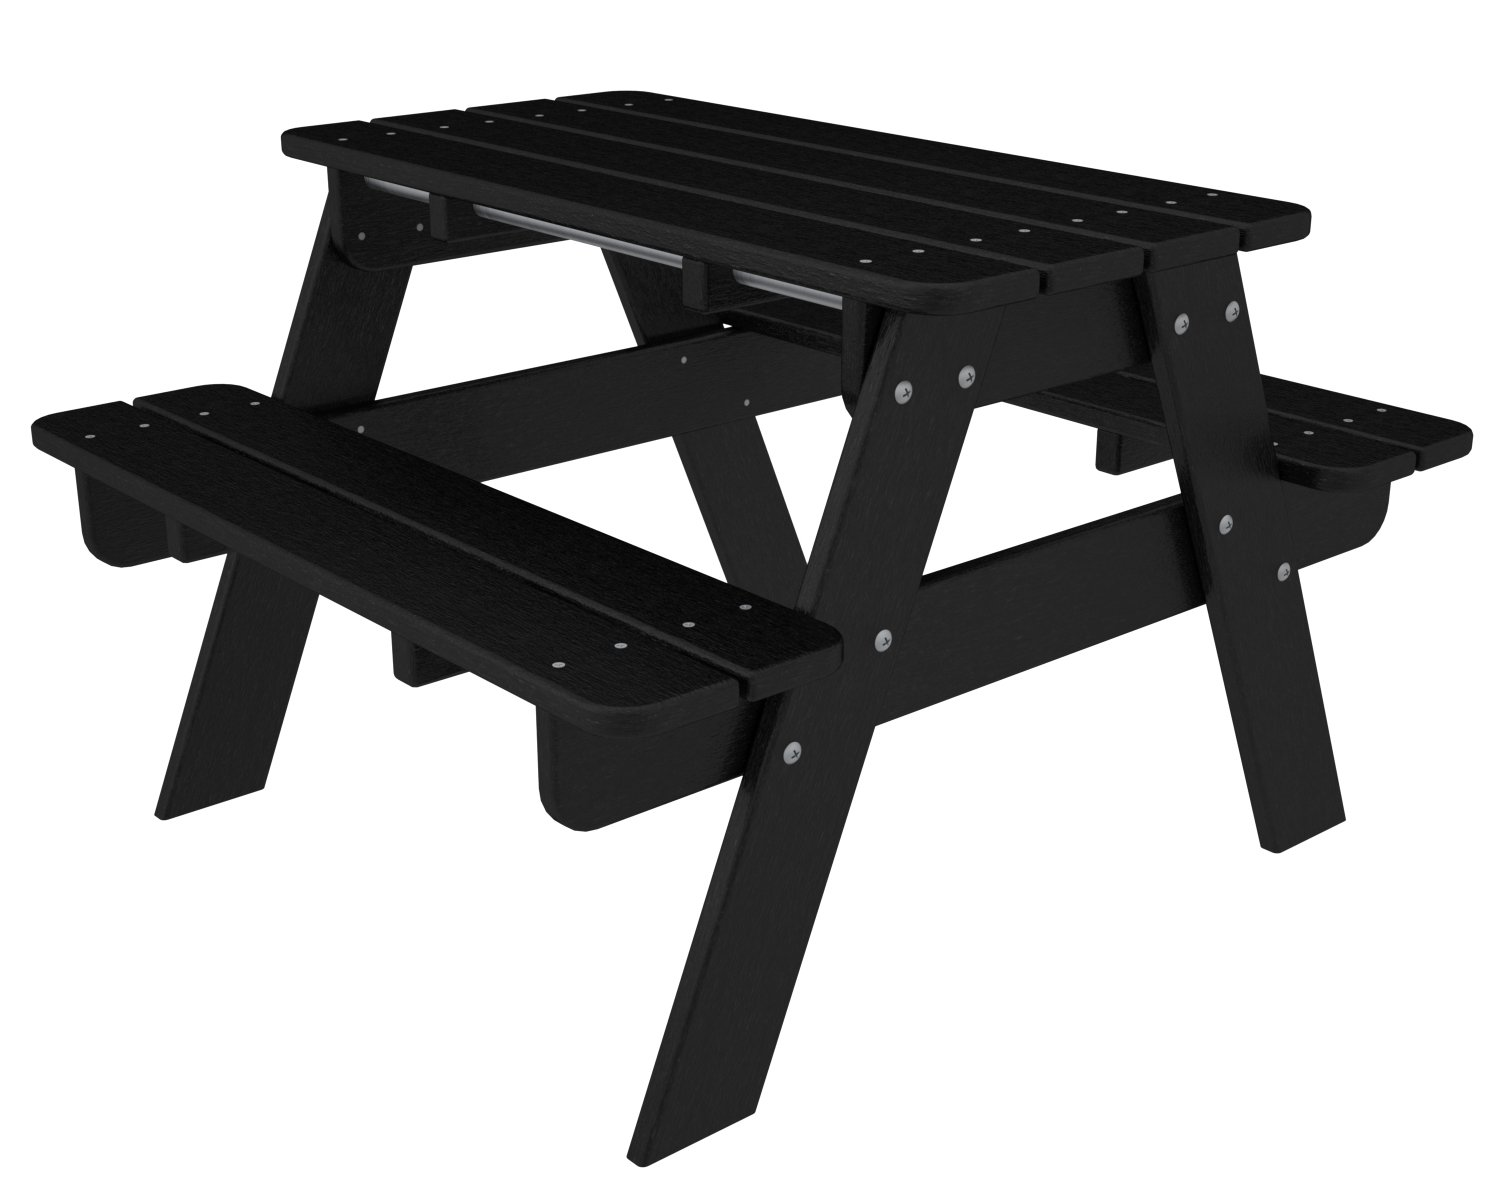 Amazoncom POLYWOOD KTBL Kids Picnic Table Black Garden Outdoor - Polywood park picnic table